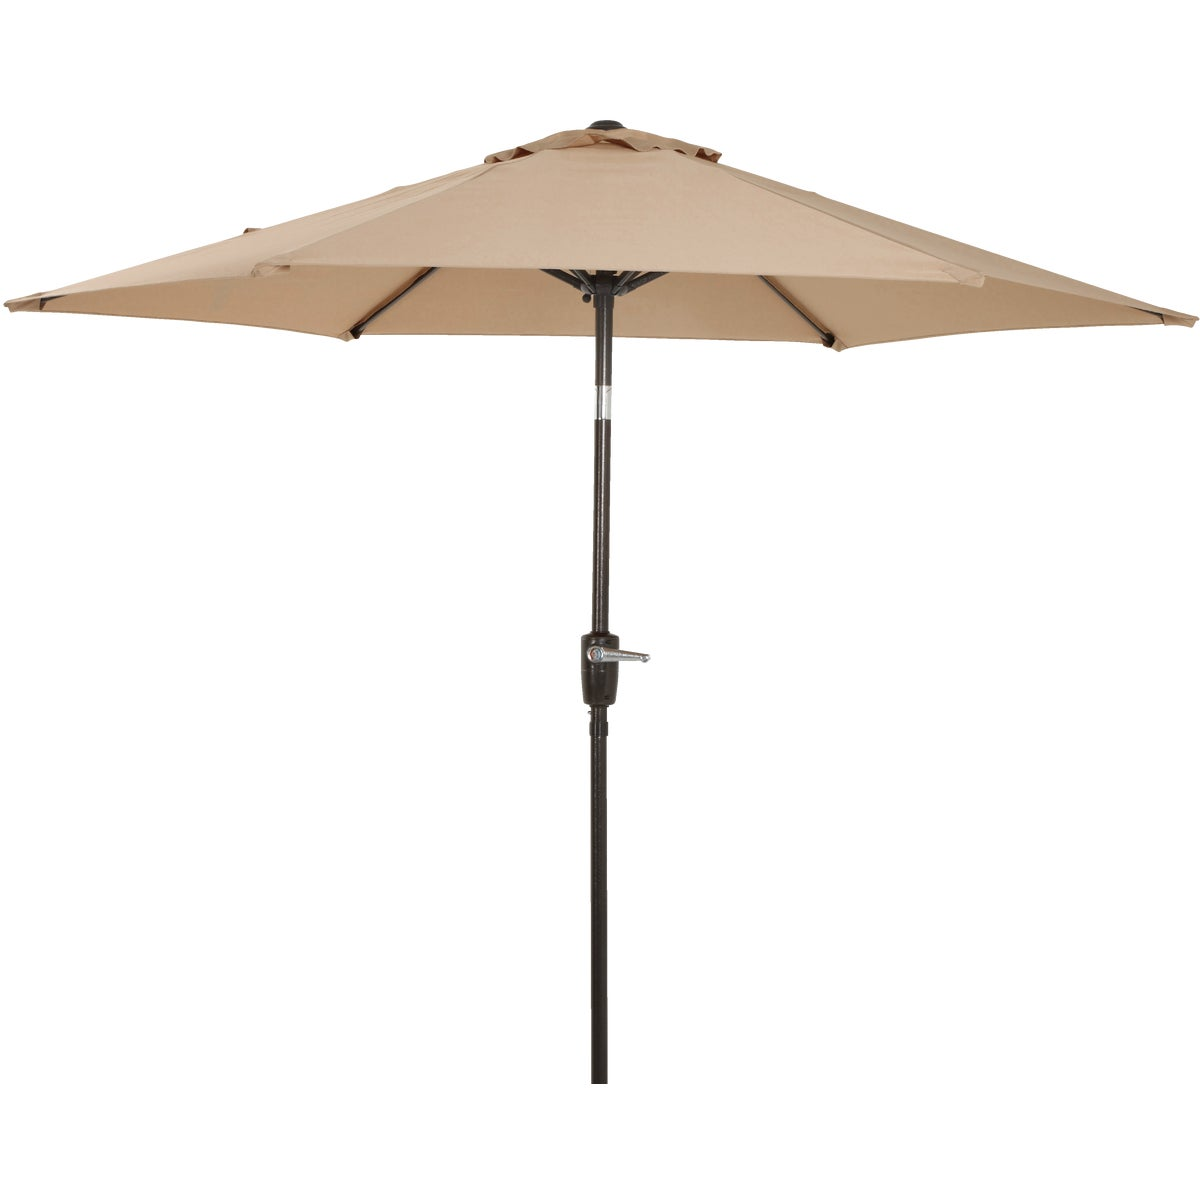 7.5' TAN UMBRELLA